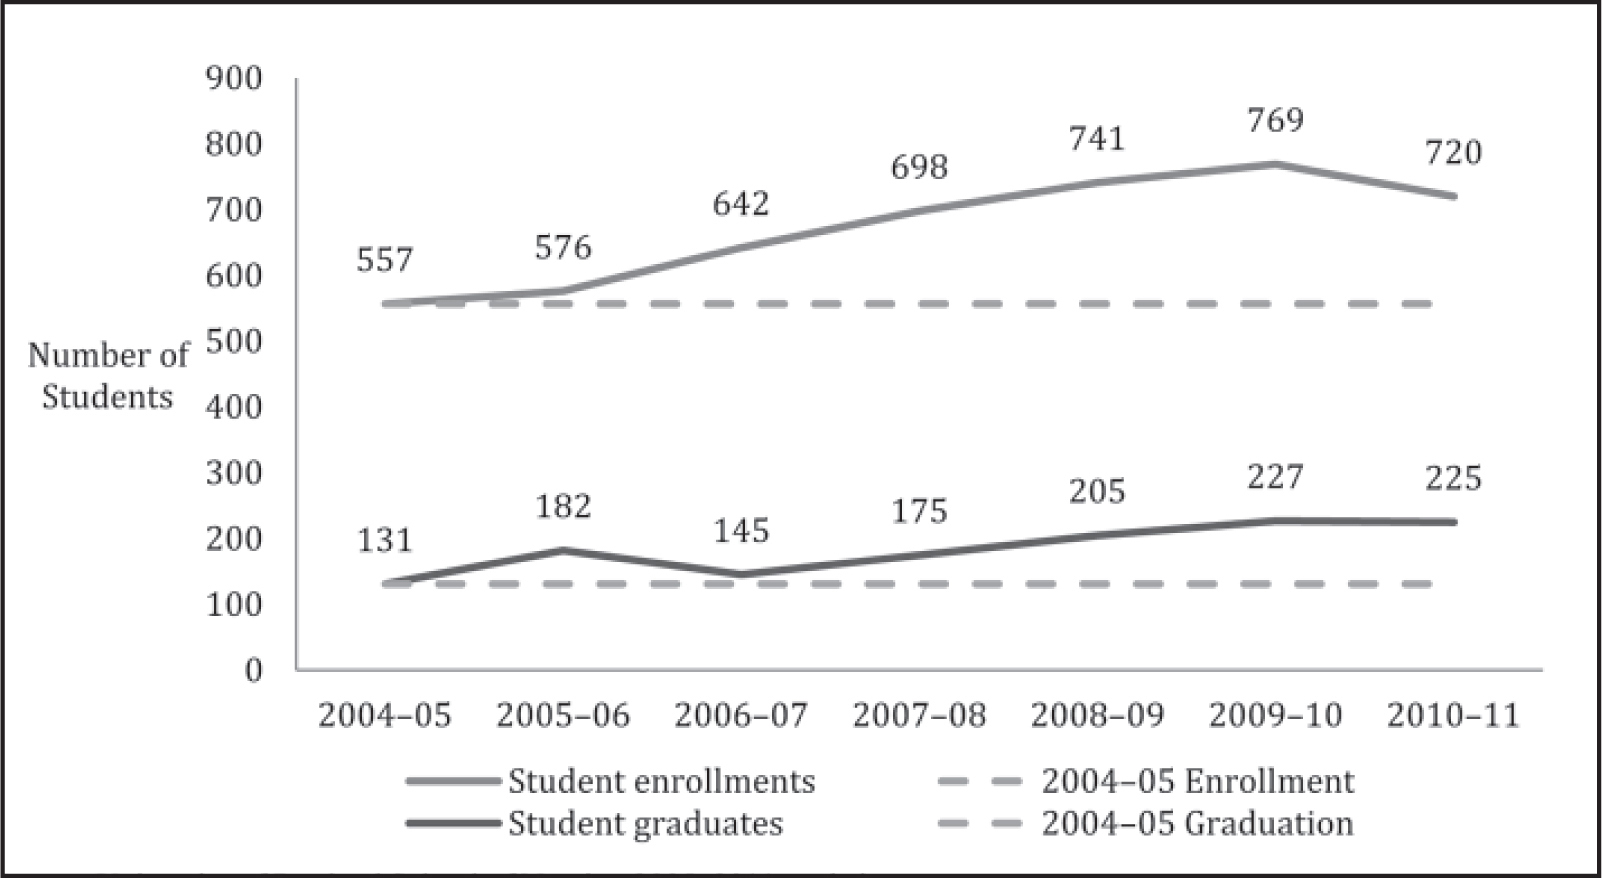 University of Portland, School of Nursing student enrollments and graduates, 2005 to 2011 statistics (Nishioka et al., 2012). Reprinted with permission from the University of Portland School of Nursing.